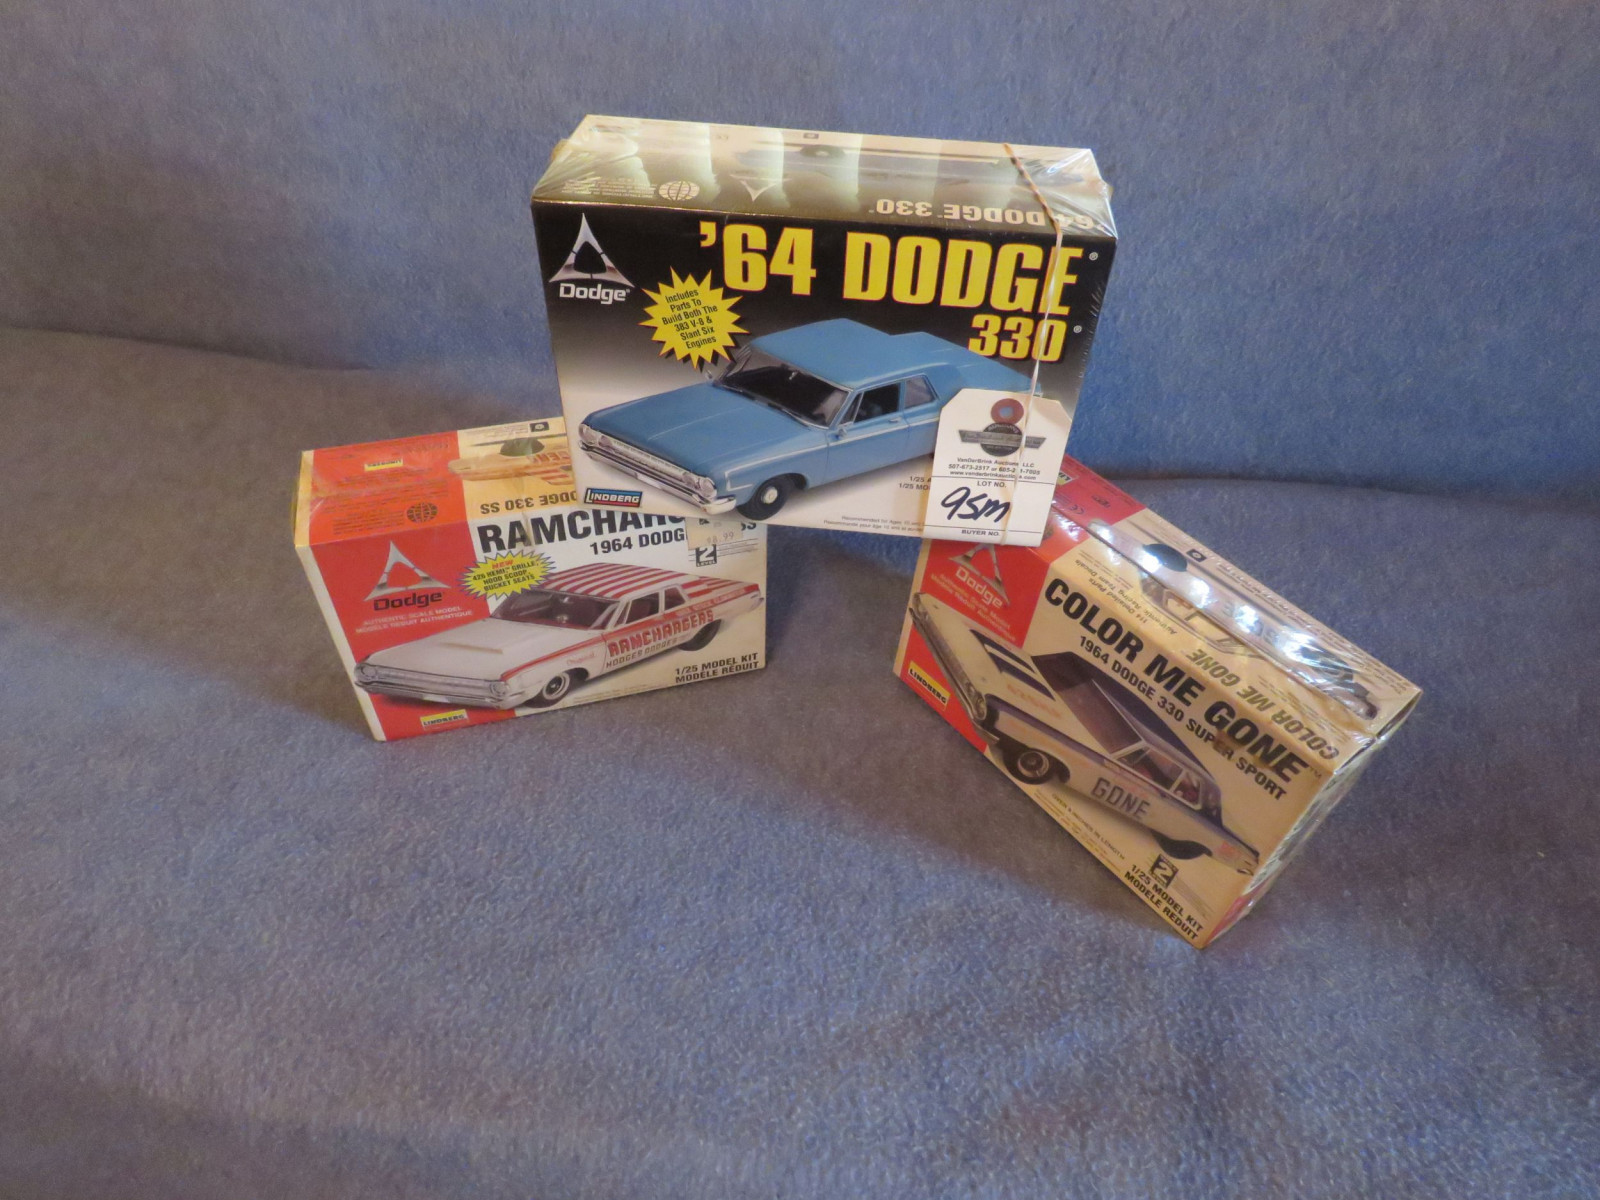 3 NIB Dodge Models - Image 1